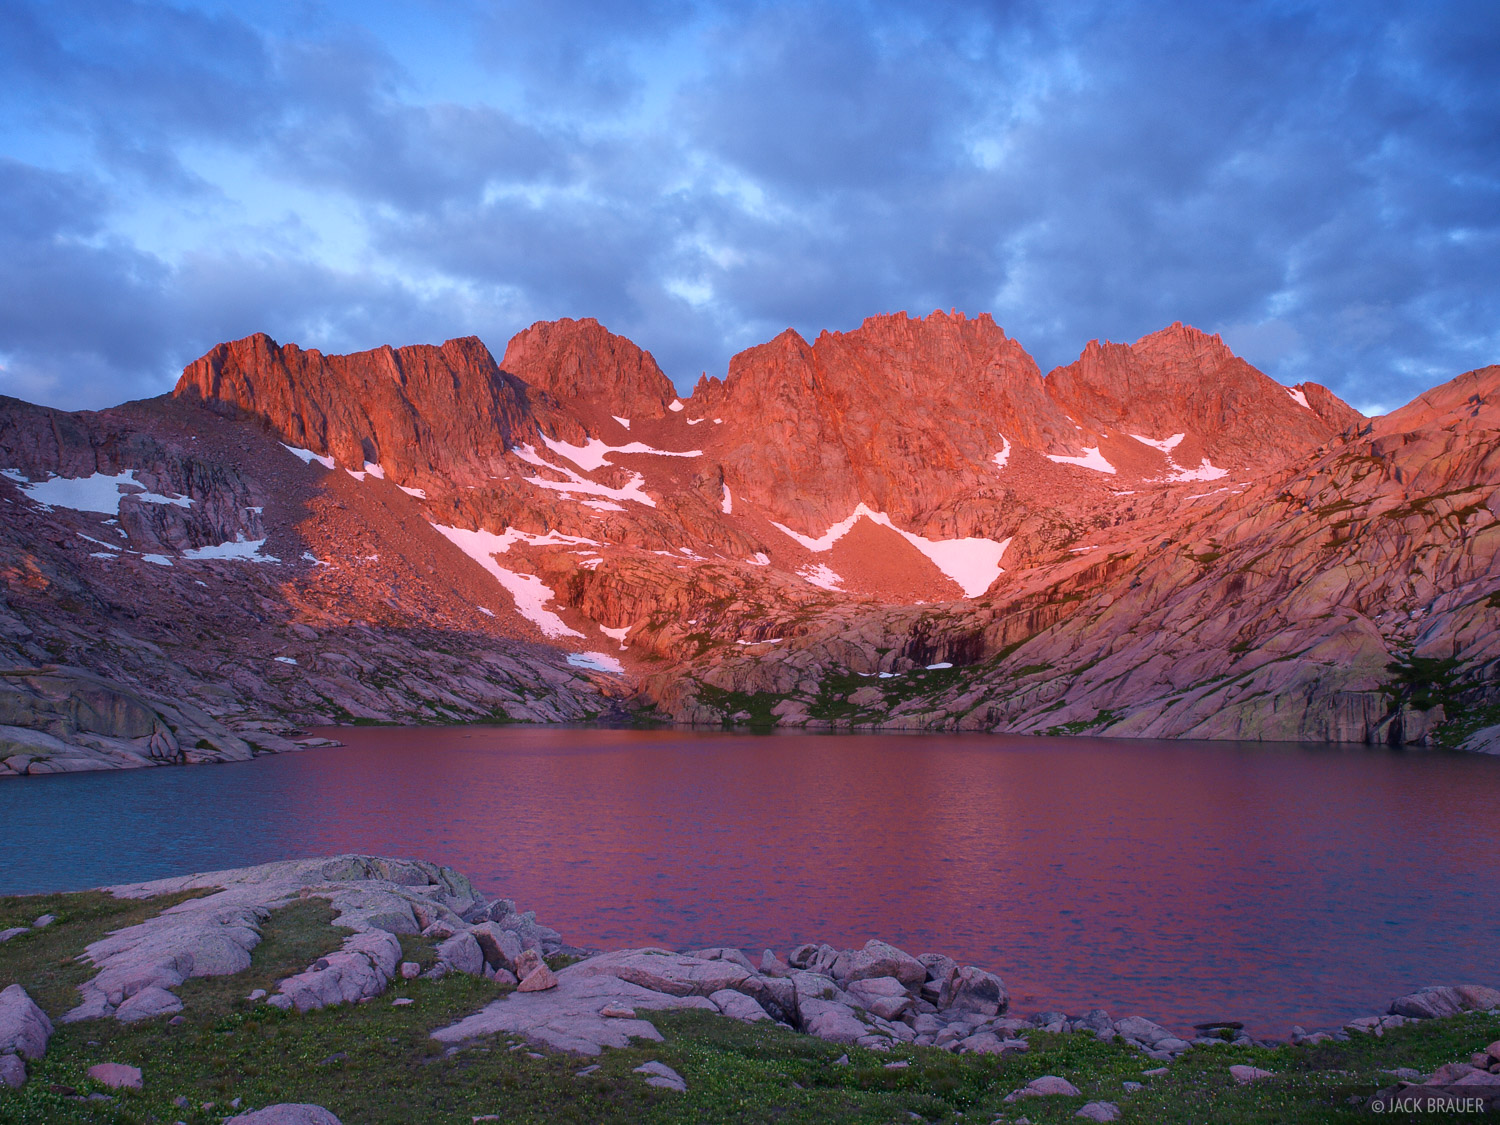 Windom Peak, Sunlight Peak, fourteeners, Colorado, Weminuche Wilderness, photo